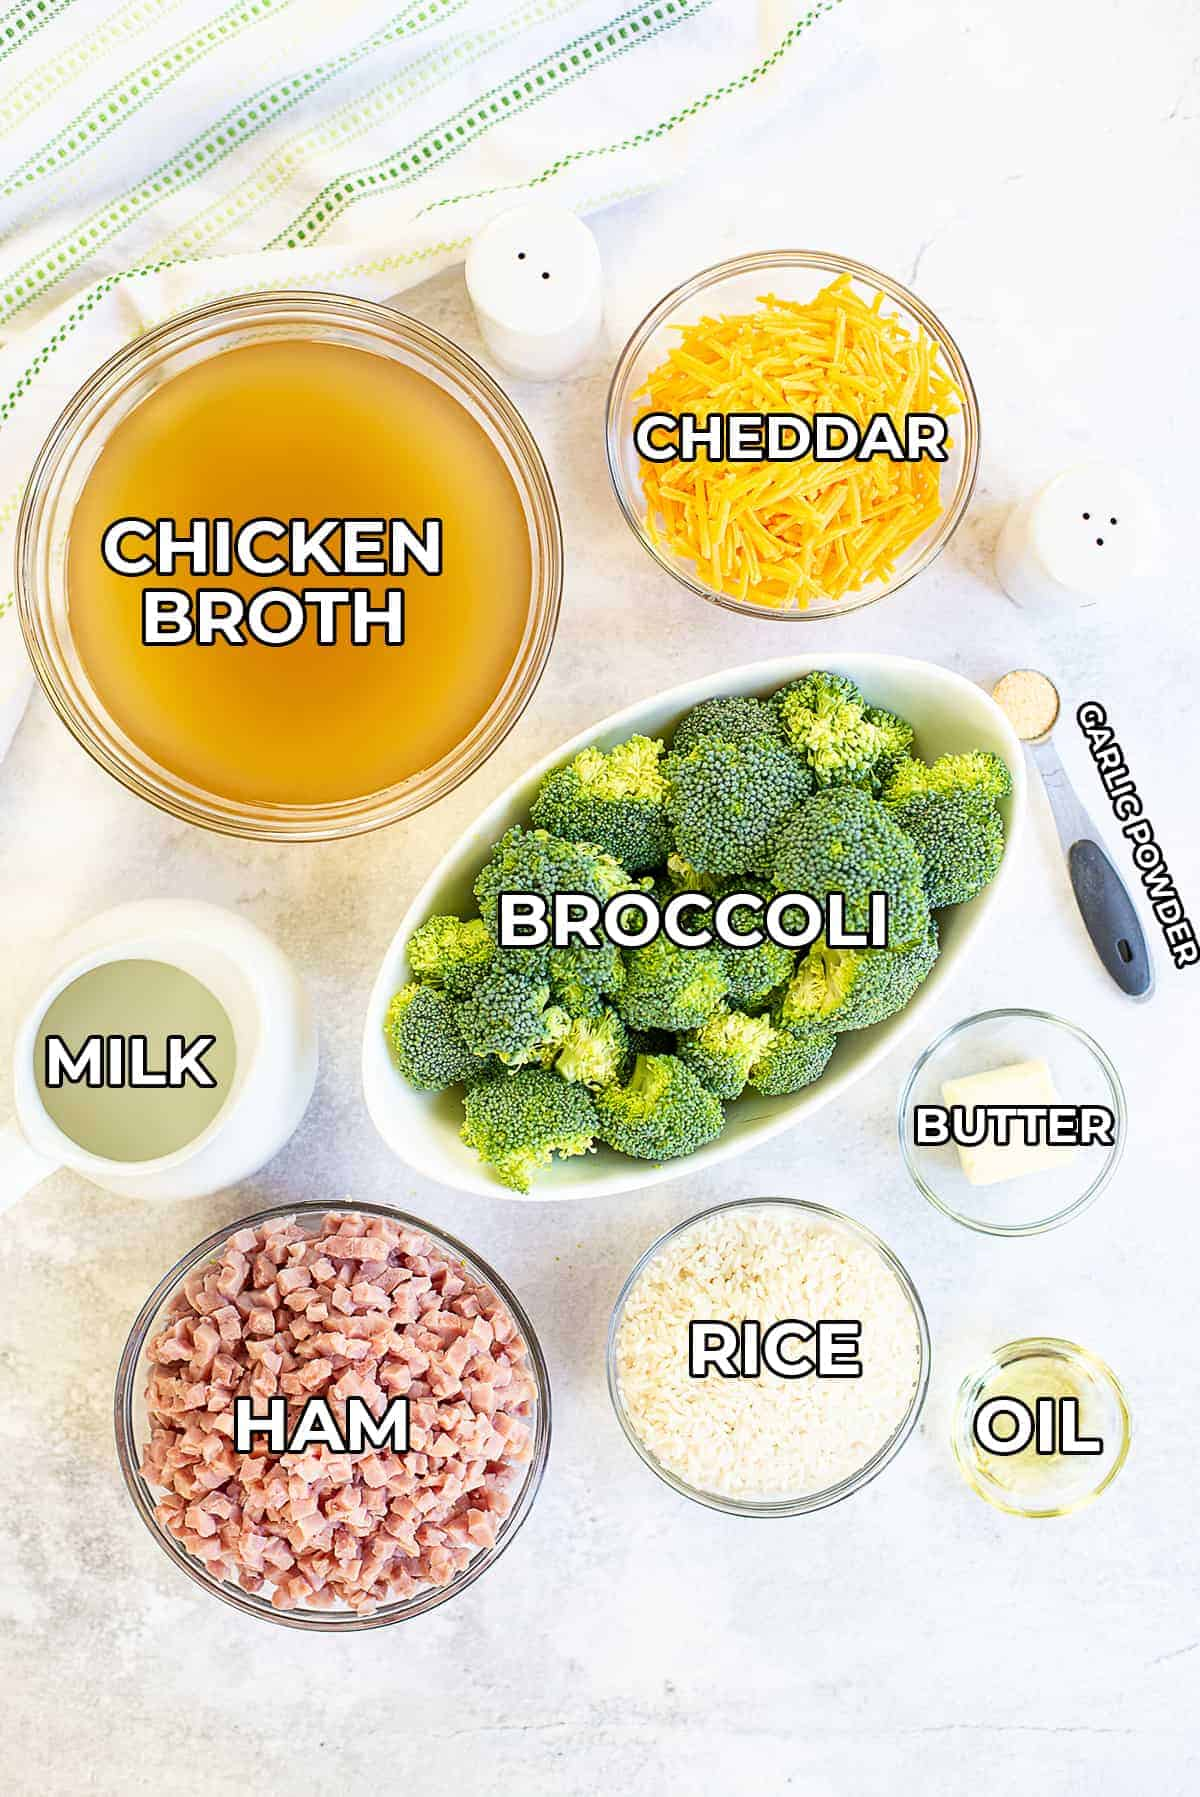 ingredients for cheesy broccoli rice with labels.